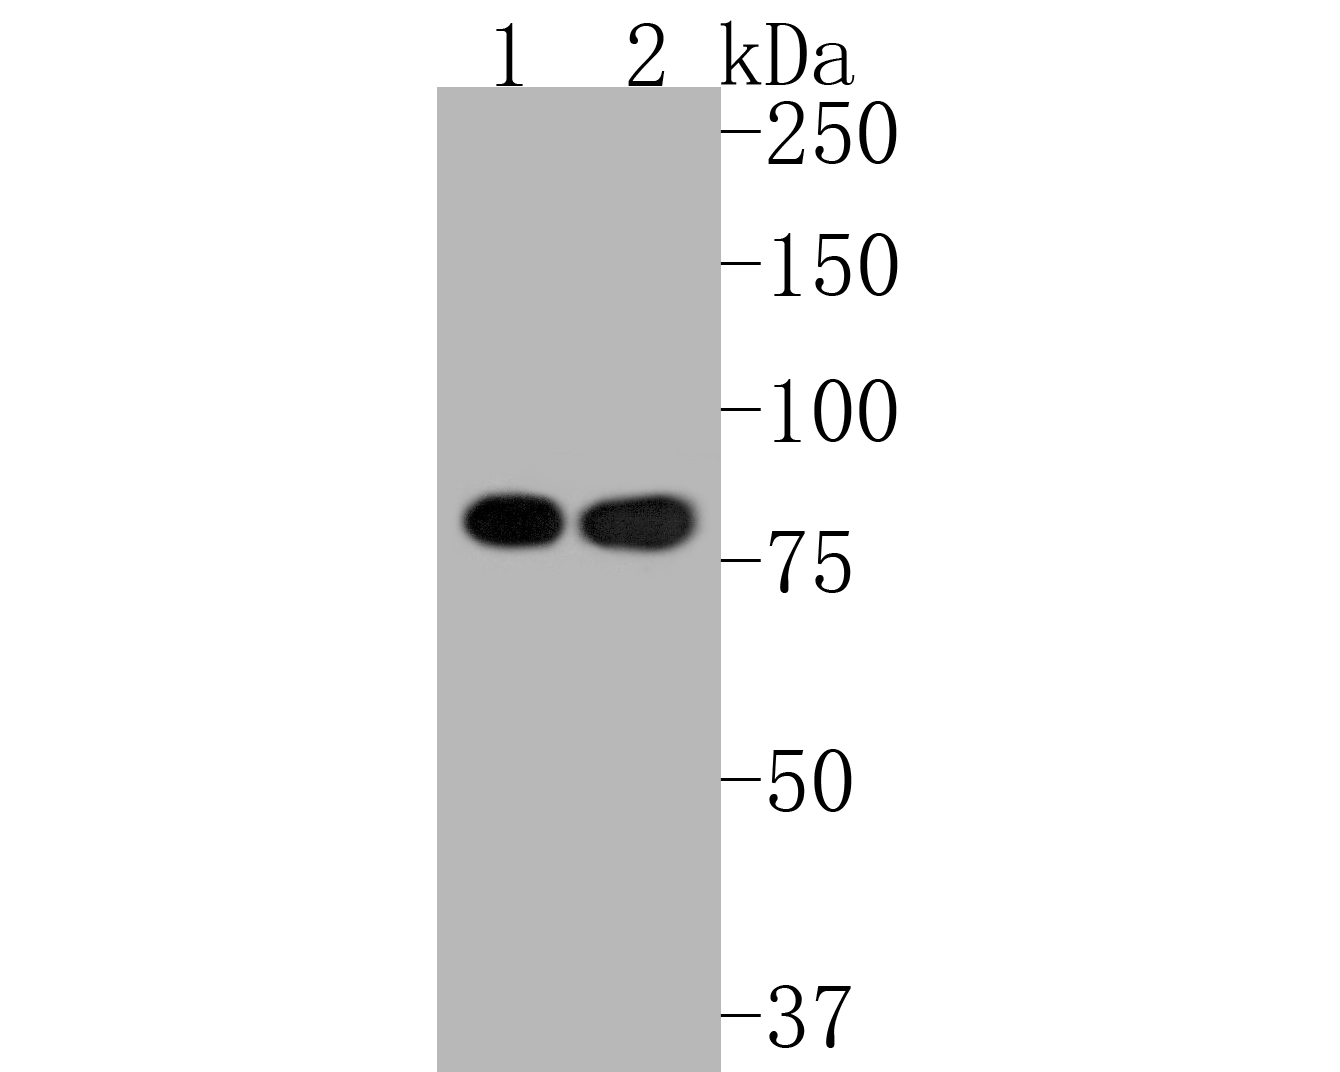 Western blot analysis of Ku80 on different lysates. Proteins were transferred to a PVDF membrane and blocked with 5% BSA in PBS for 1 hour at room temperature. The primary antibody (ET1610-40, 1/500) was used in 5% BSA at room temperature for 2 hours. Goat Anti-Rabbit IgG - HRP Secondary Antibody (HA1001) at 1:5,000 dilution was used for 1 hour at room temperature.<br /> Positive control: <br /> Lane 1: MCF-7 cell lysate<br /> Lane 2: A549 cell lysate